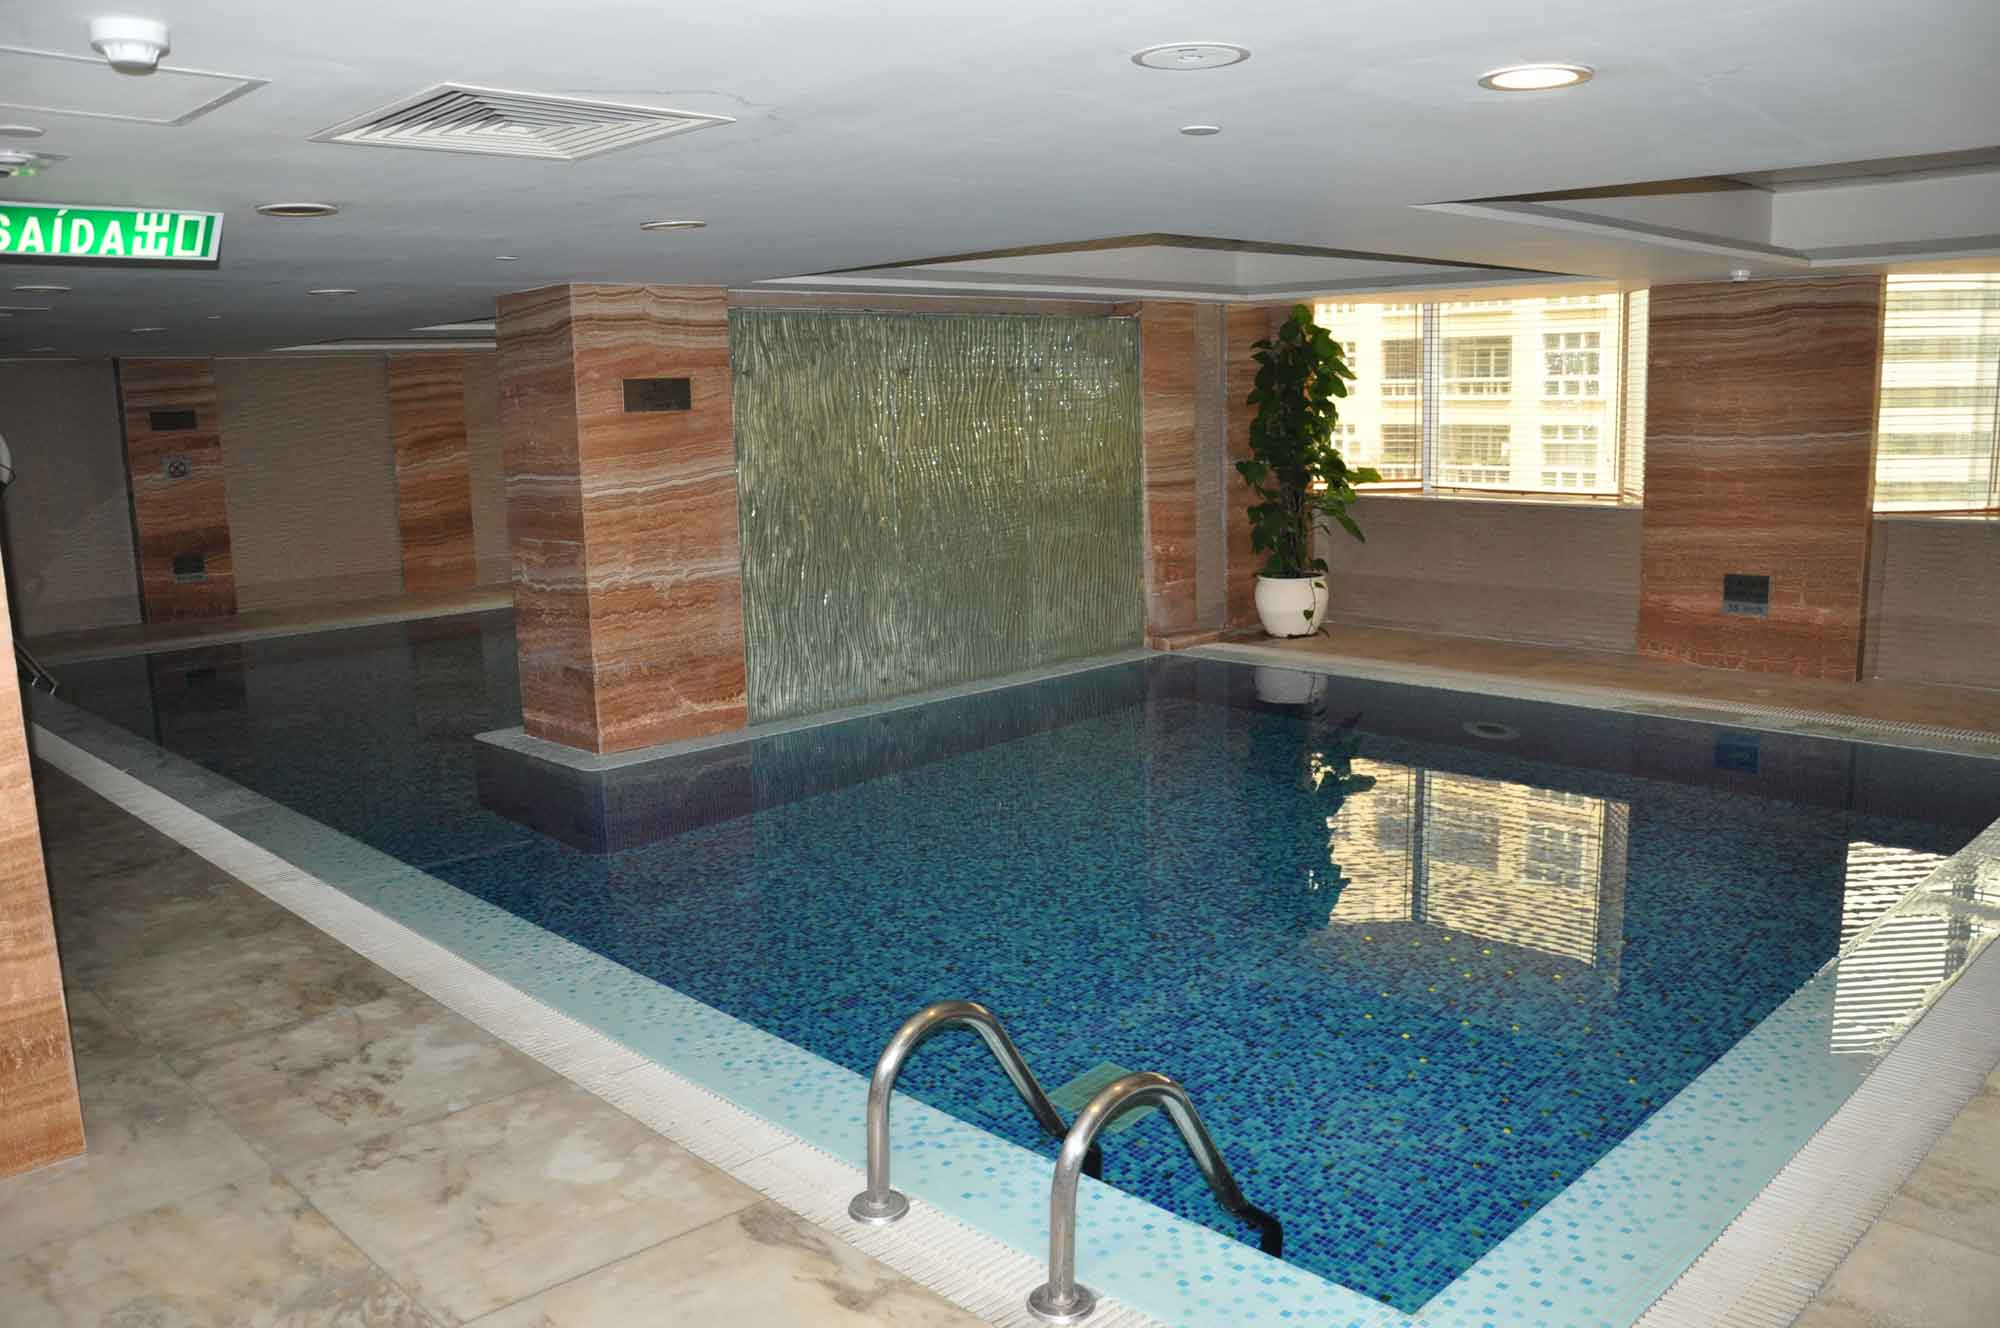 Holiday Inn Macau swimming pool